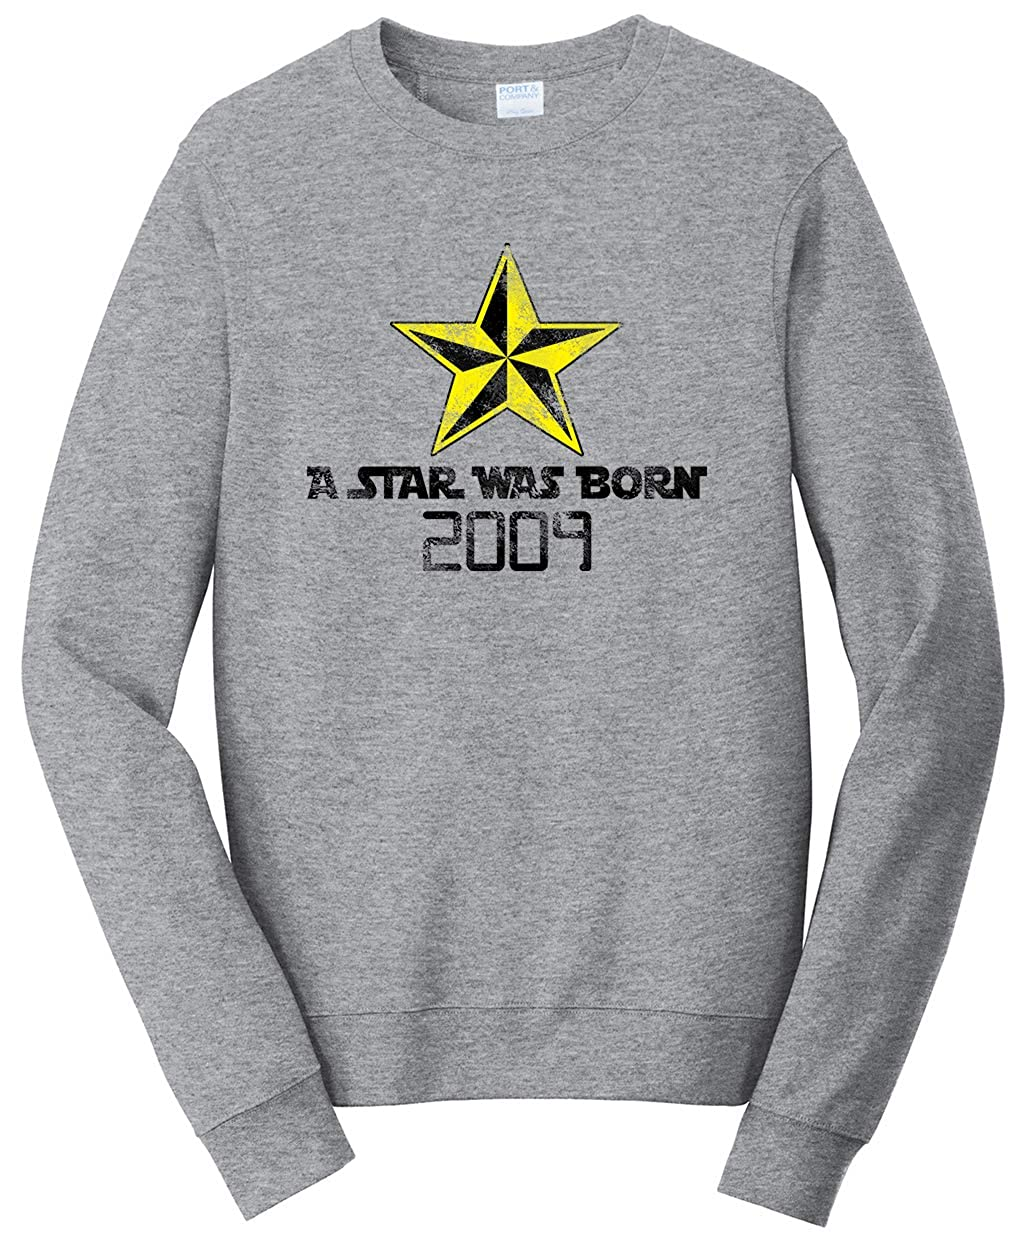 Tenacitee Unisex A Star was Born 2009 Sweatshirt